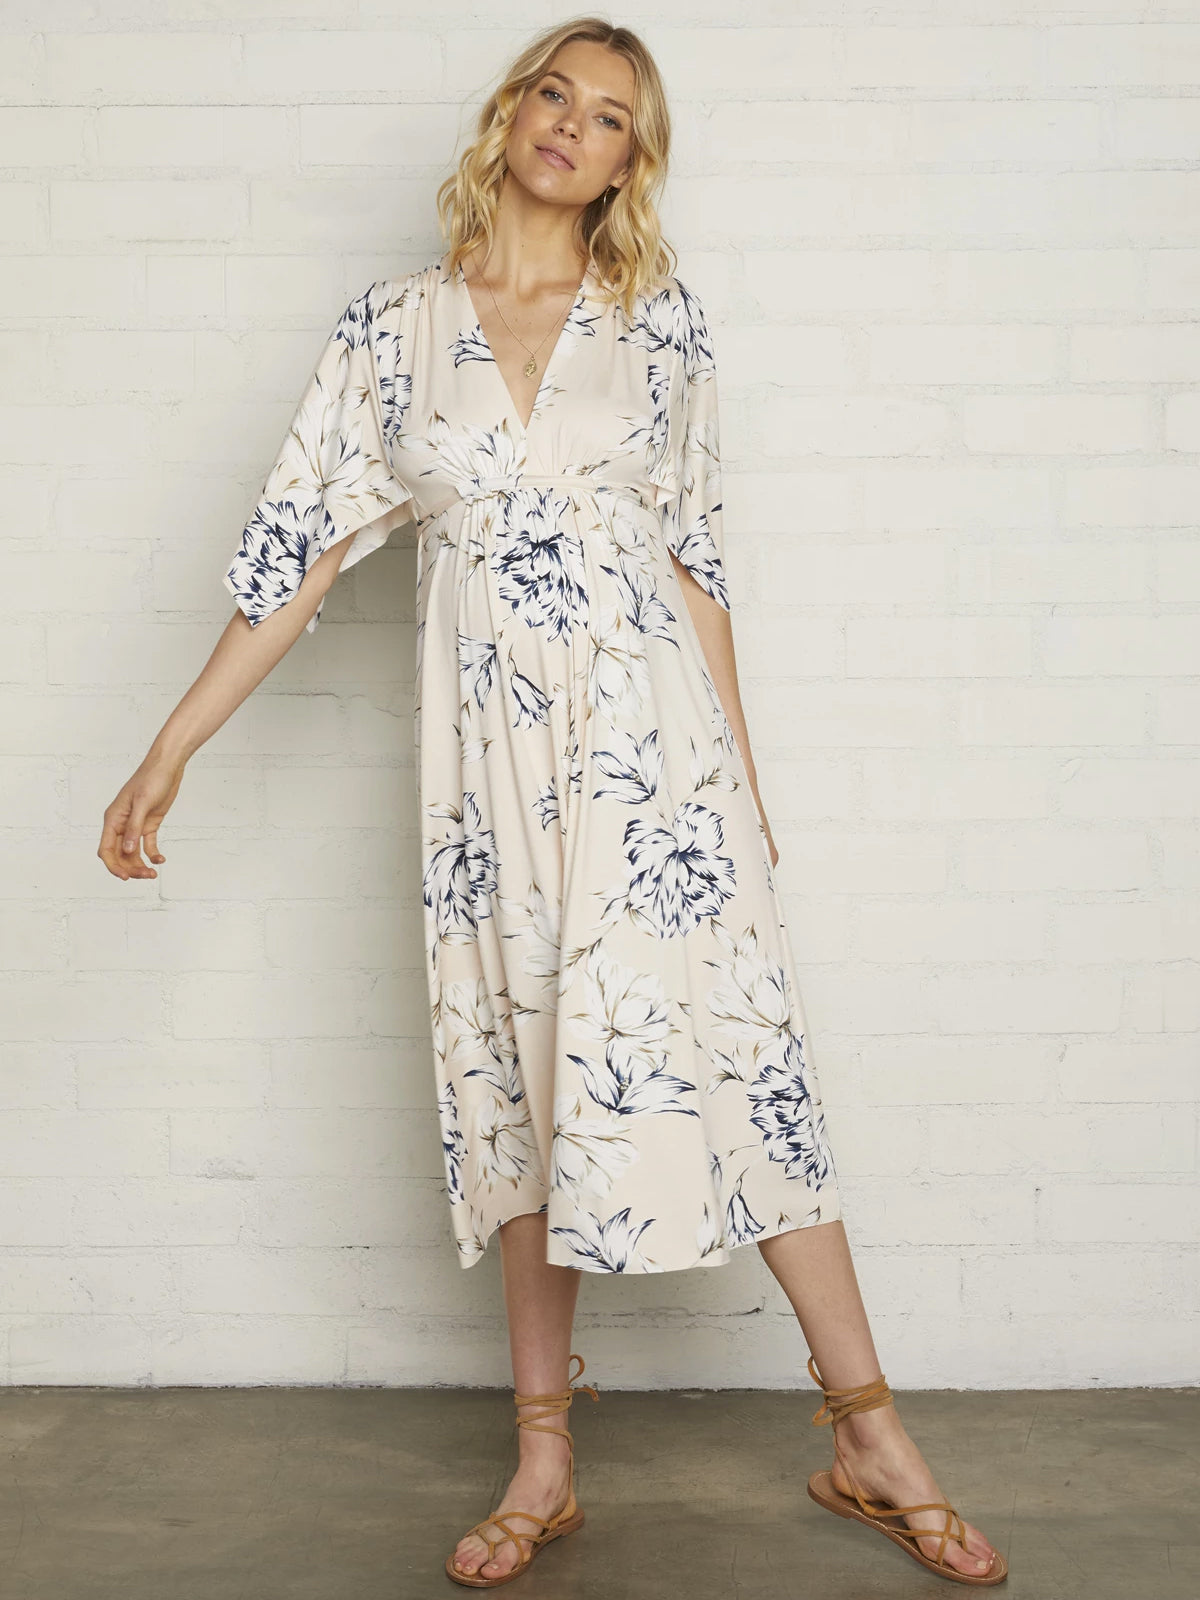 Rachel Pally Maternity Mid-Length Caftan Dress - Fleur Cream Floral Print | TILDEN